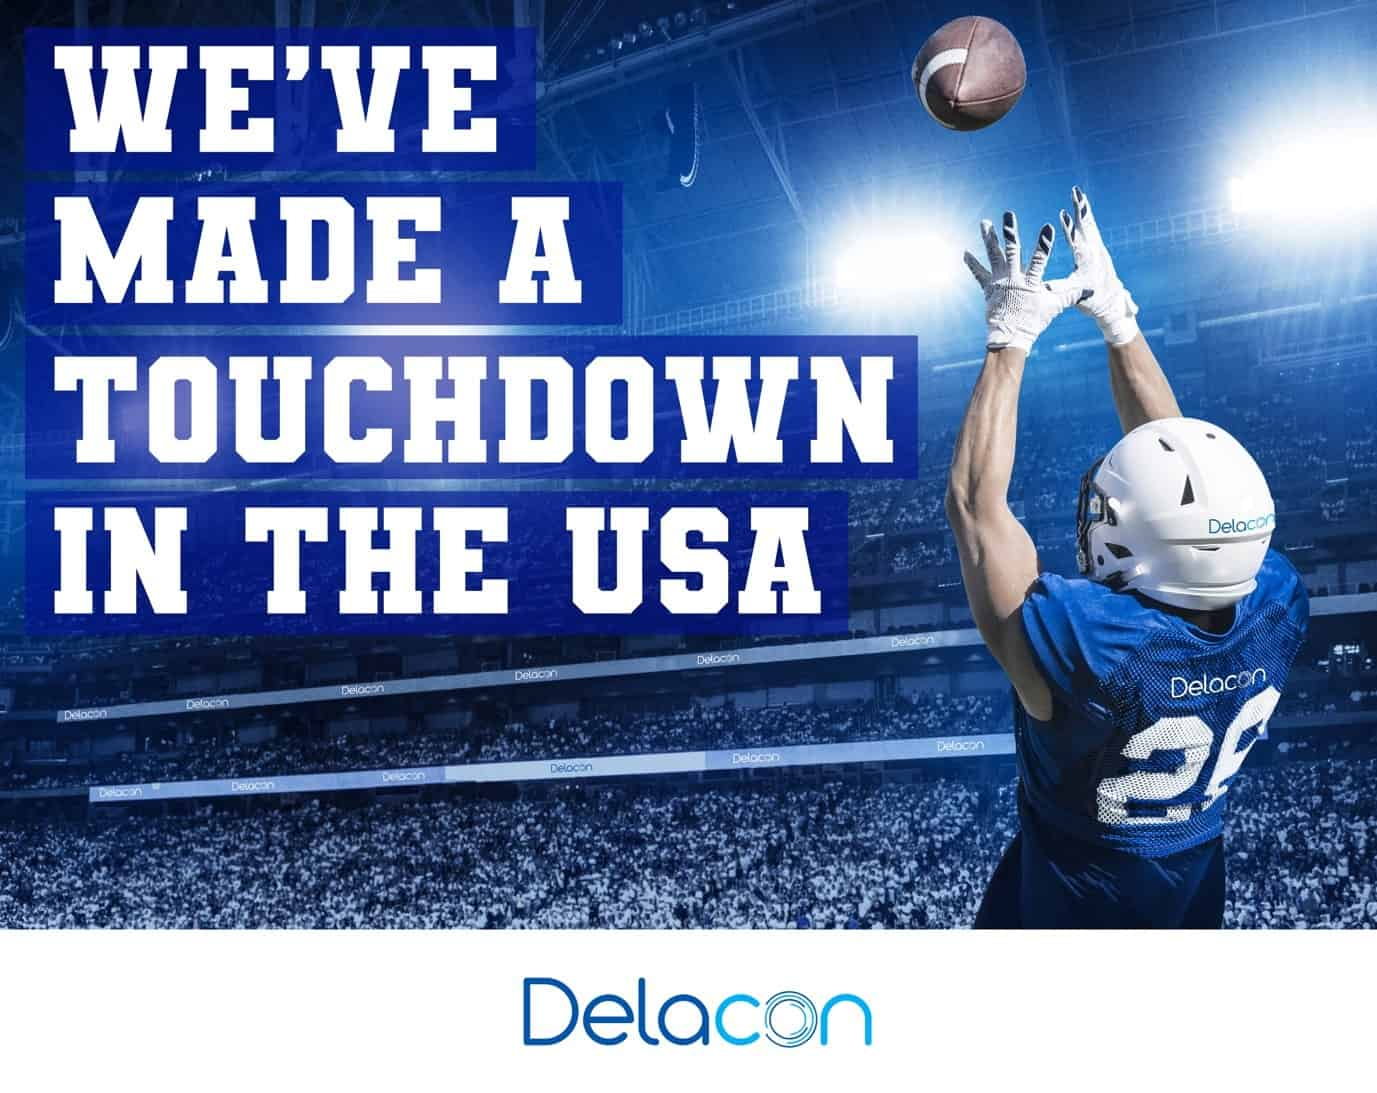 Delacon scores a tocuhdown in the united states